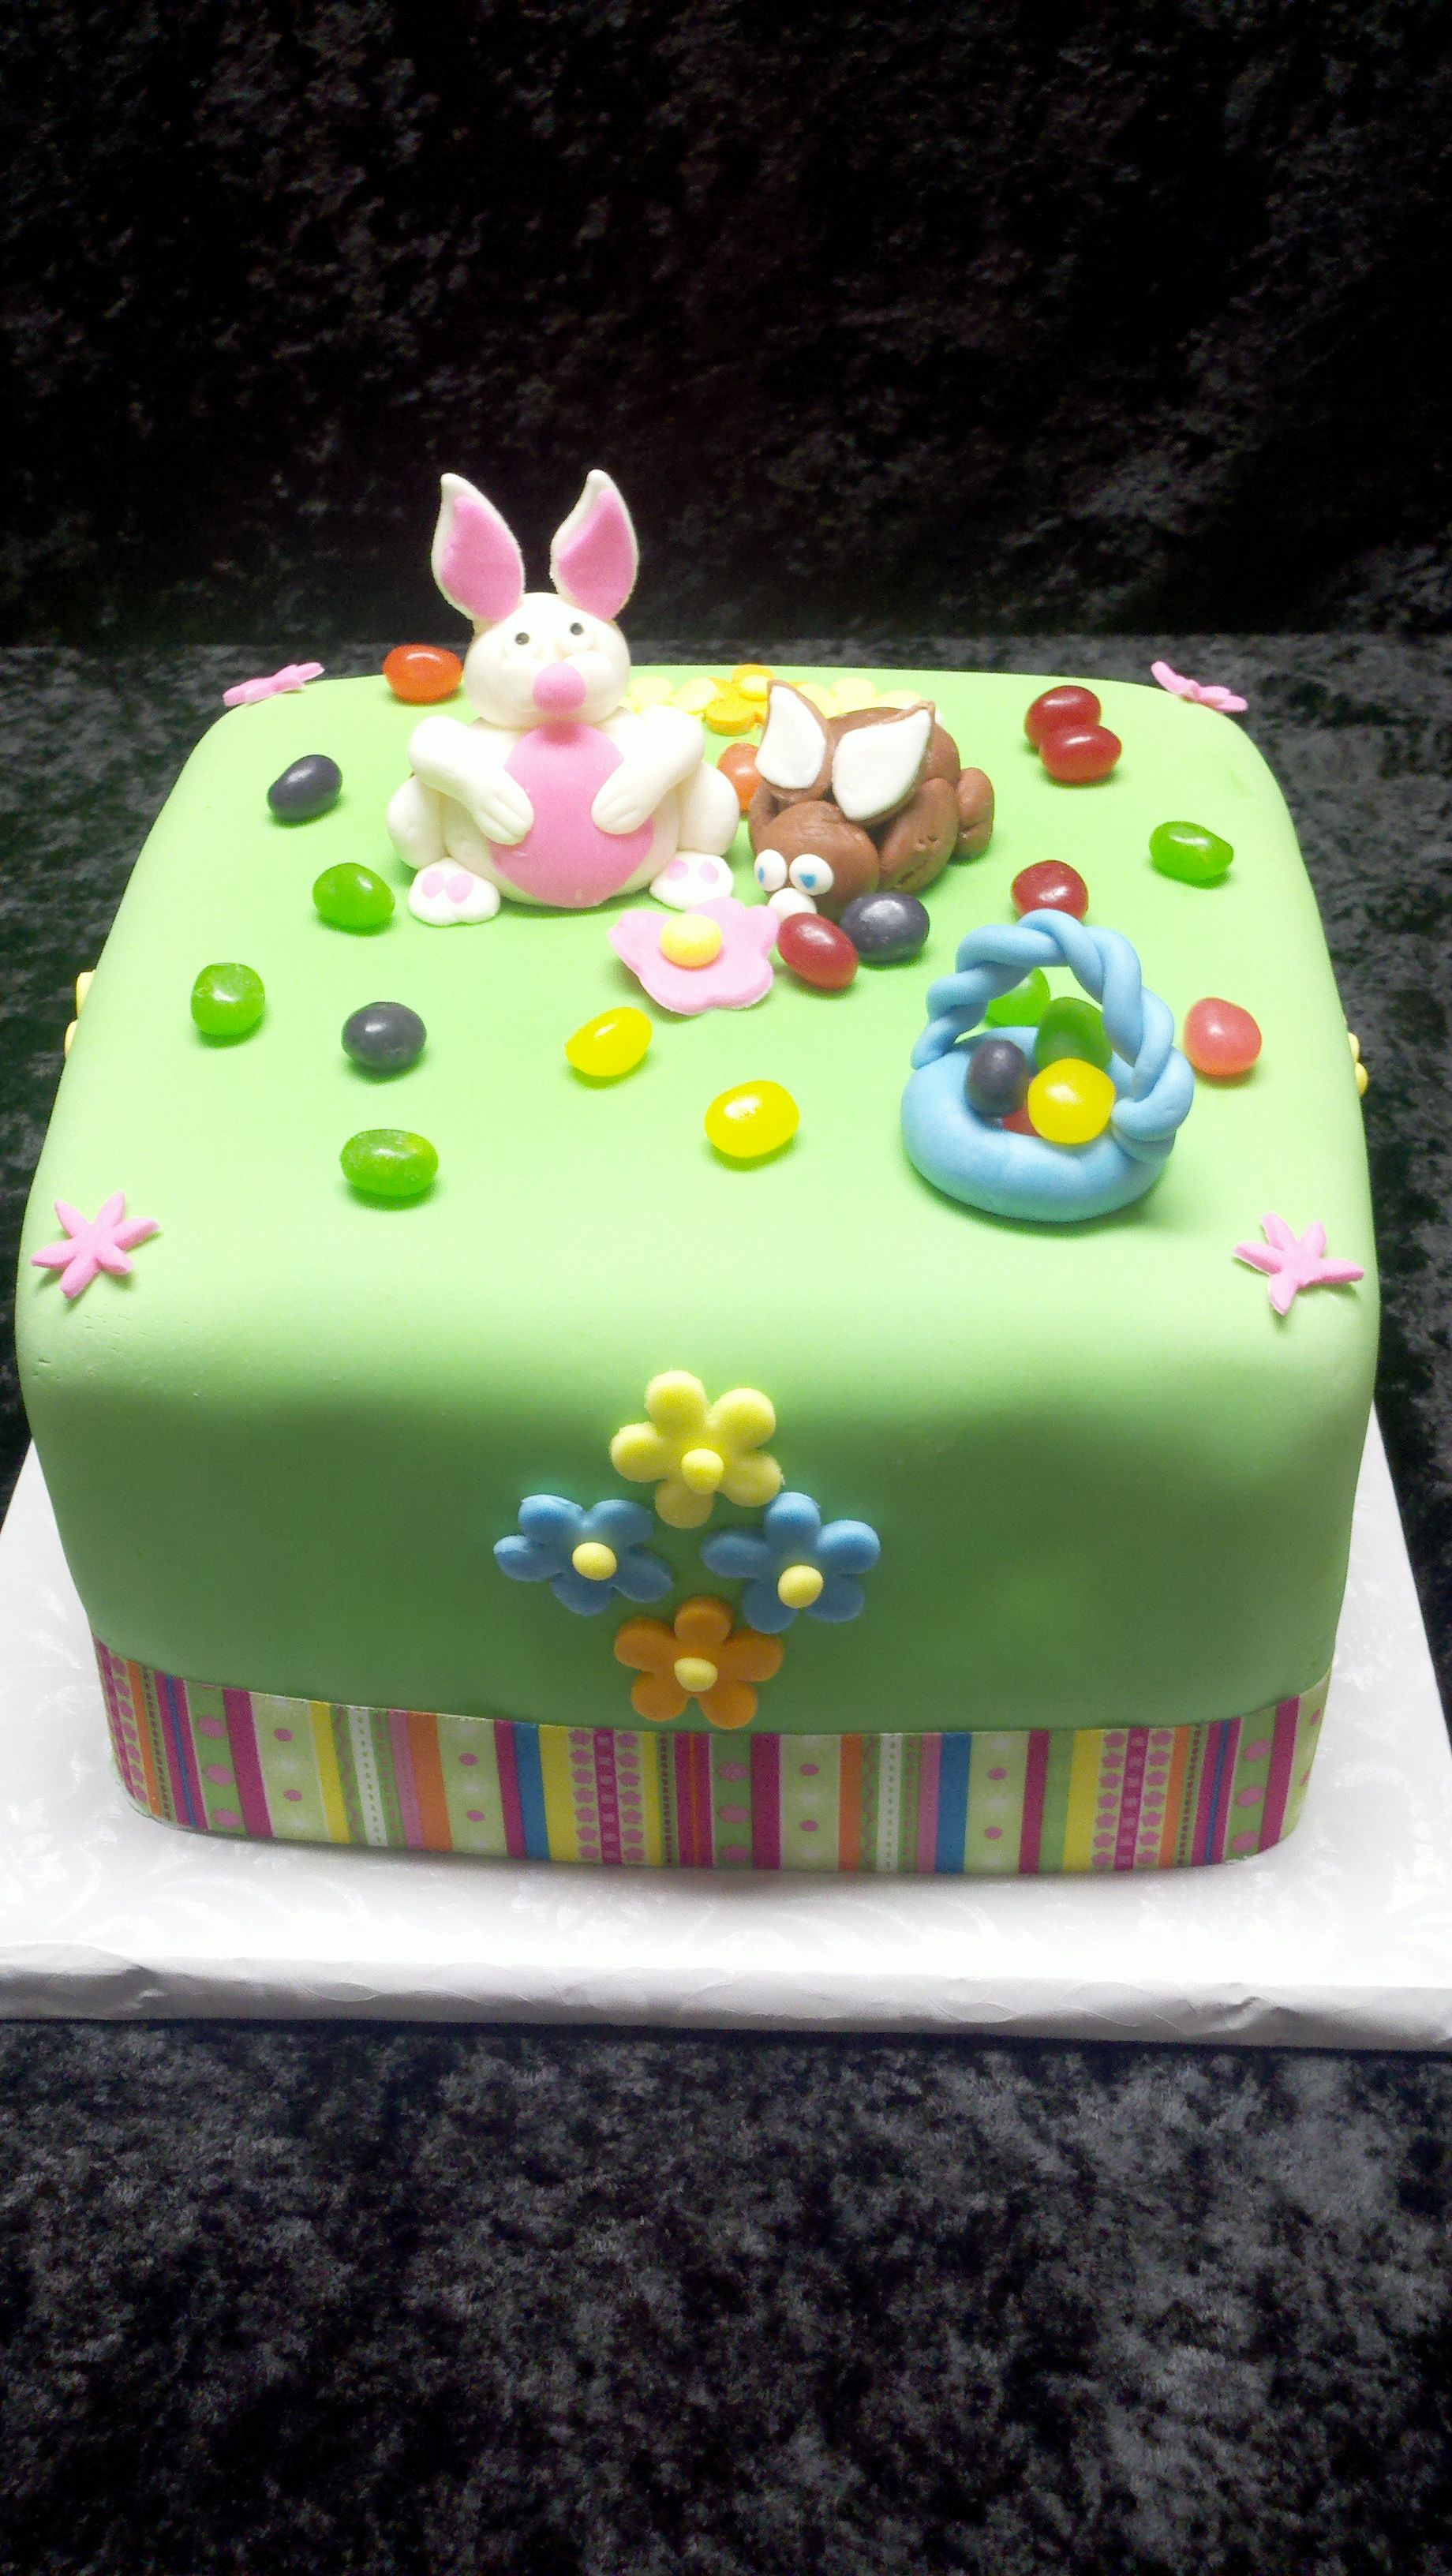 Easter Cake Decorations Pinterest : Easter cake with handmade decorations Fancy cakes ...